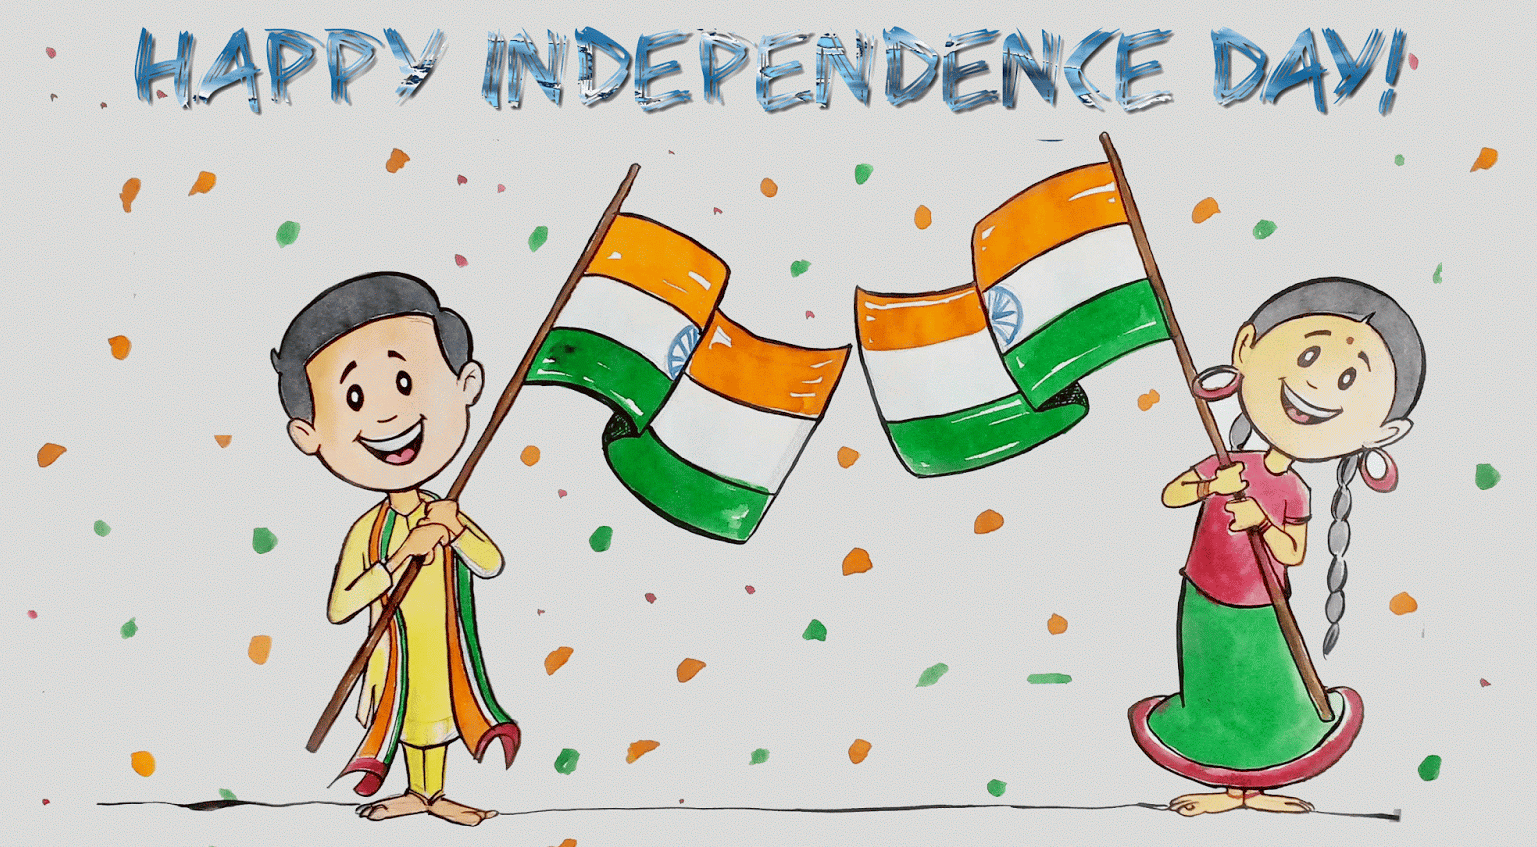 Independence day pictures drawing cartoon on august also rh pinterest